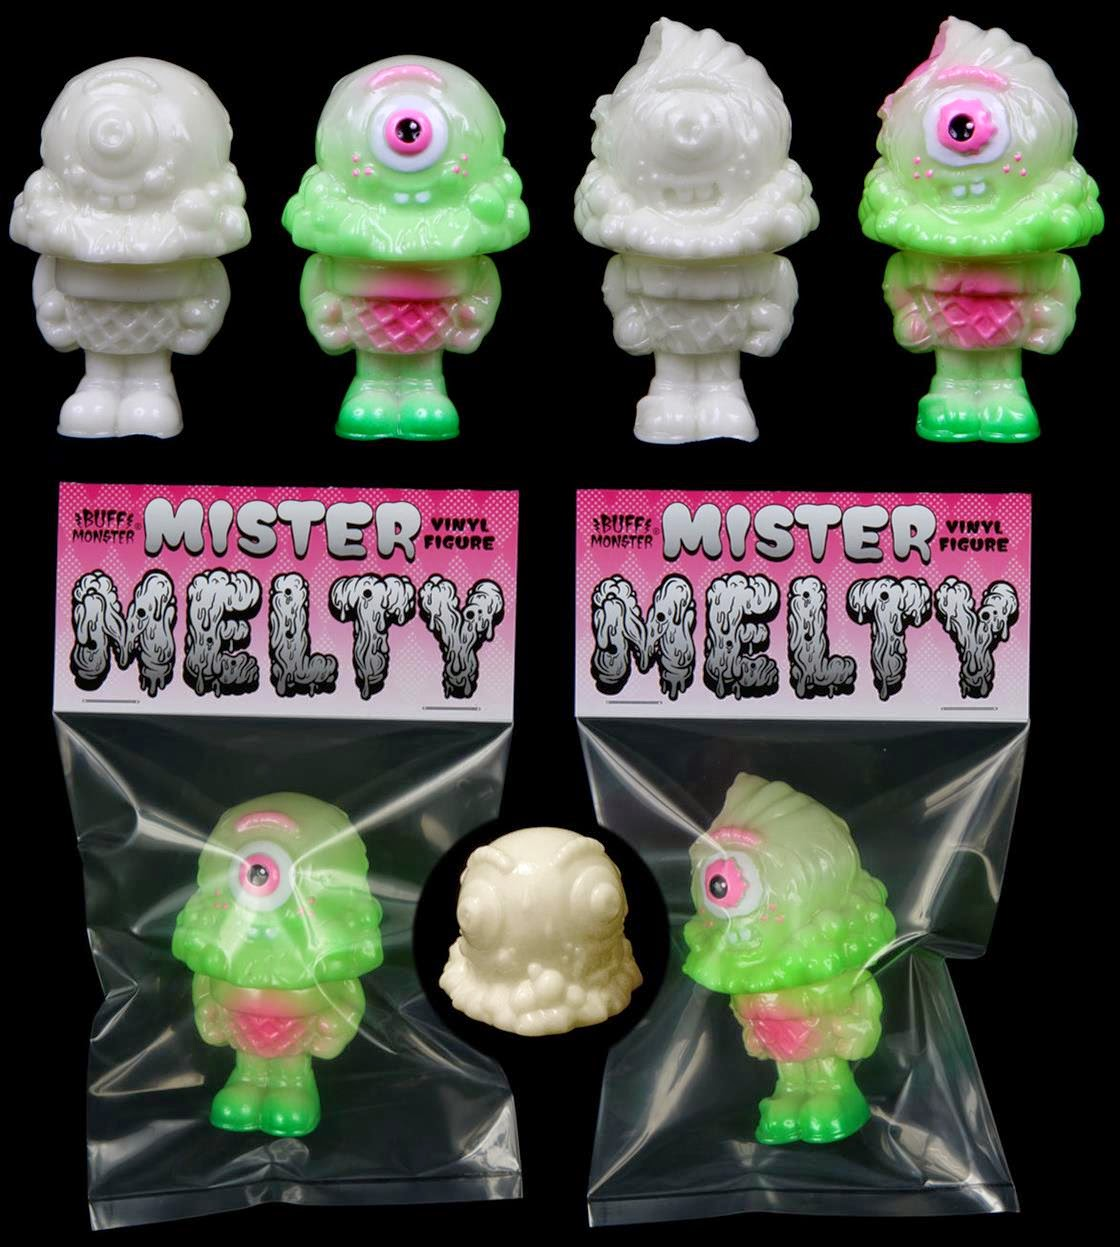 Glow in the Dark Mister Melty & Zombie Mister Melty Vinyl Figures by Buff Monster